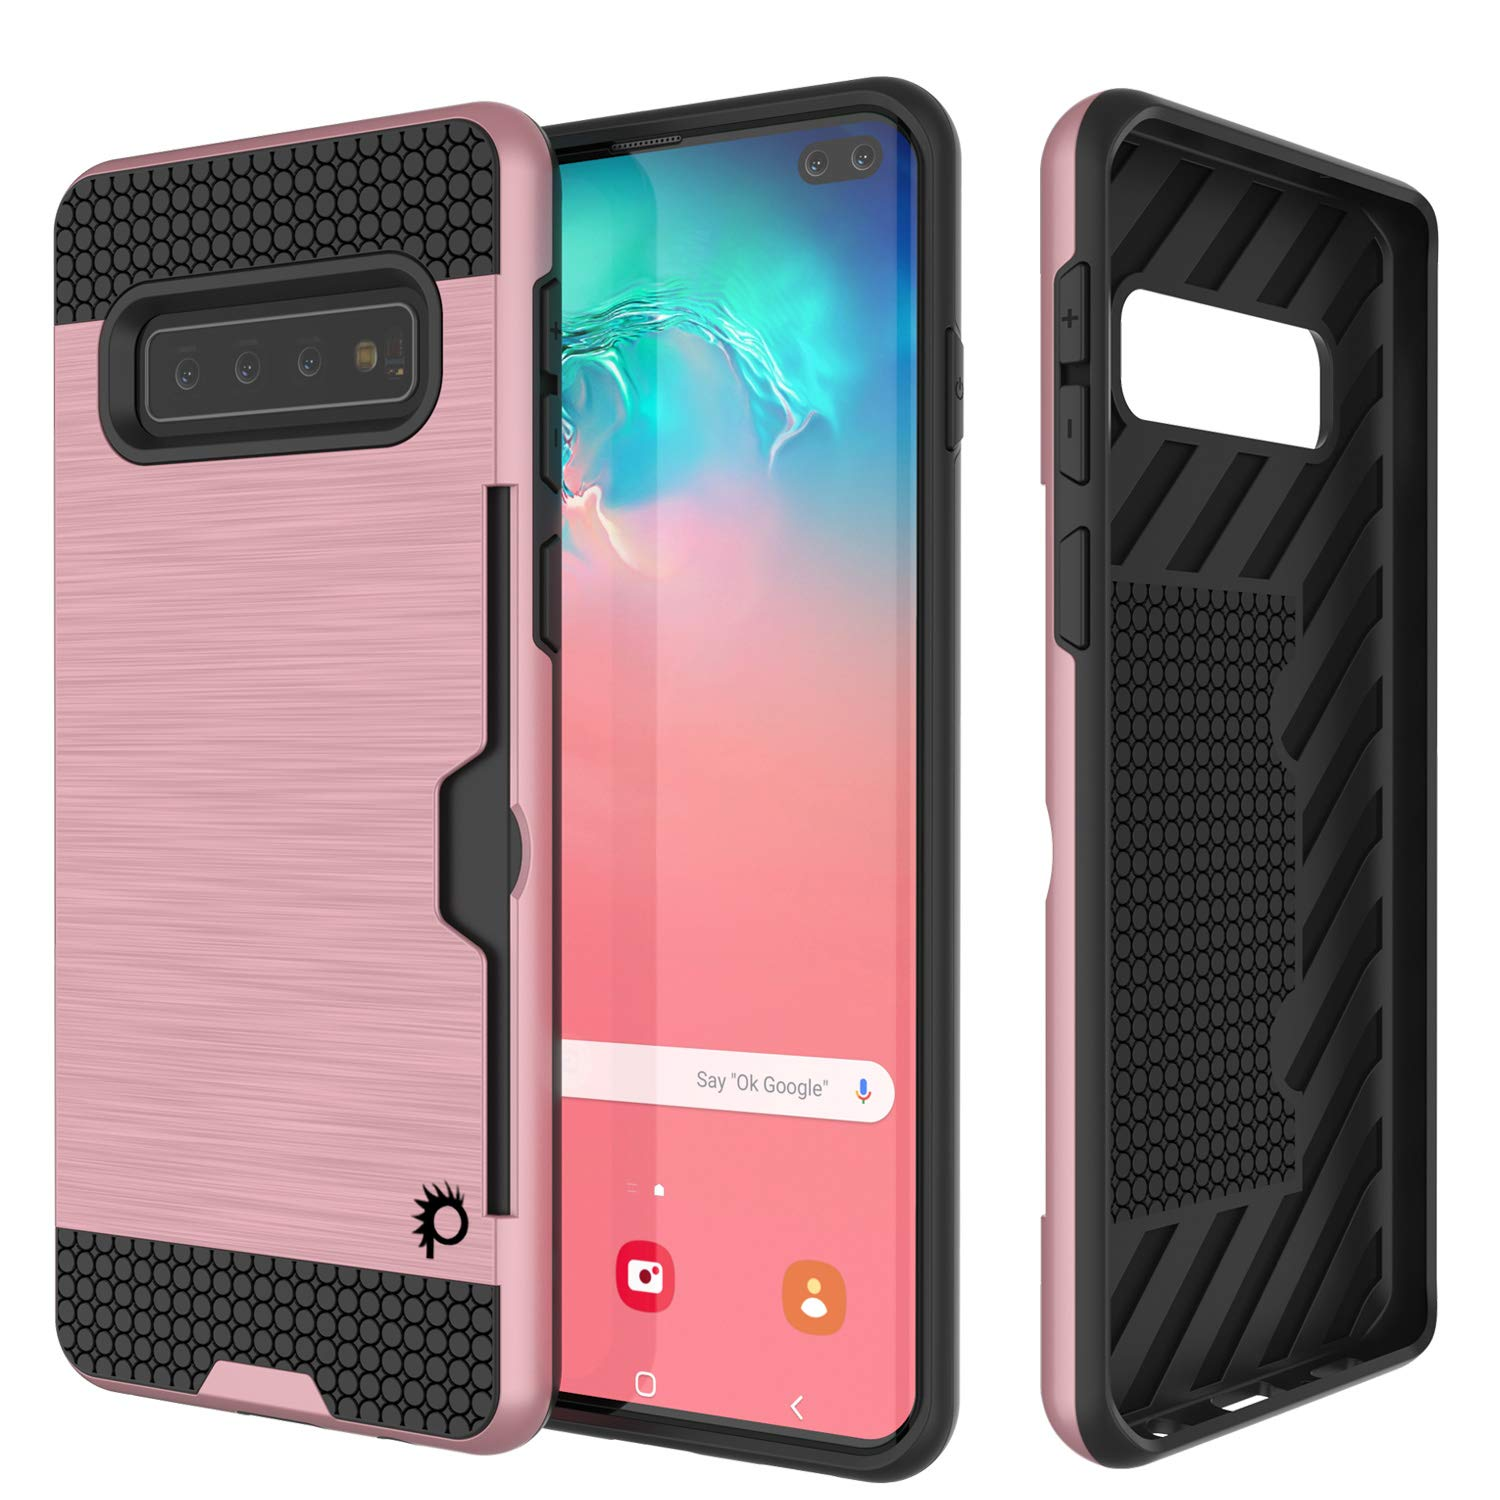 Galaxy S10+ Plus  Case, PUNKcase [SLOT Series] [Slim Fit] Dual-Layer Armor Cover w/Integrated Anti-Shock System, Credit Card Slot [Rose Gold]